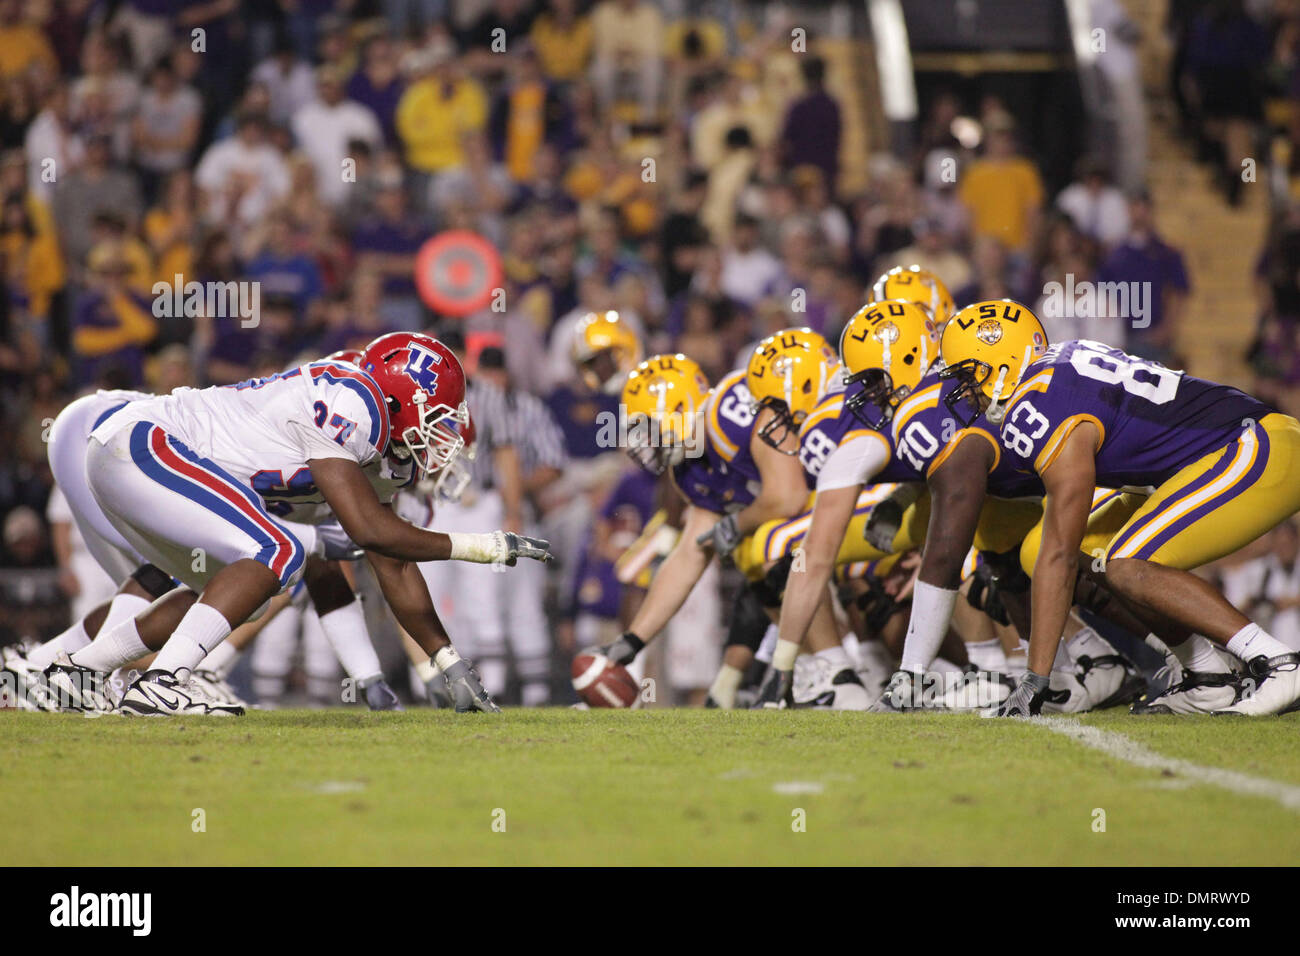 Louisiana Tech and LSU faceoff during the game at Tiger Stadium in Baton Rouge, Louisiana.  LSU won the contest 24-16. (Credit Image: © Matt Lange/Southcreek Global/ZUMApress.com) - Stock Image